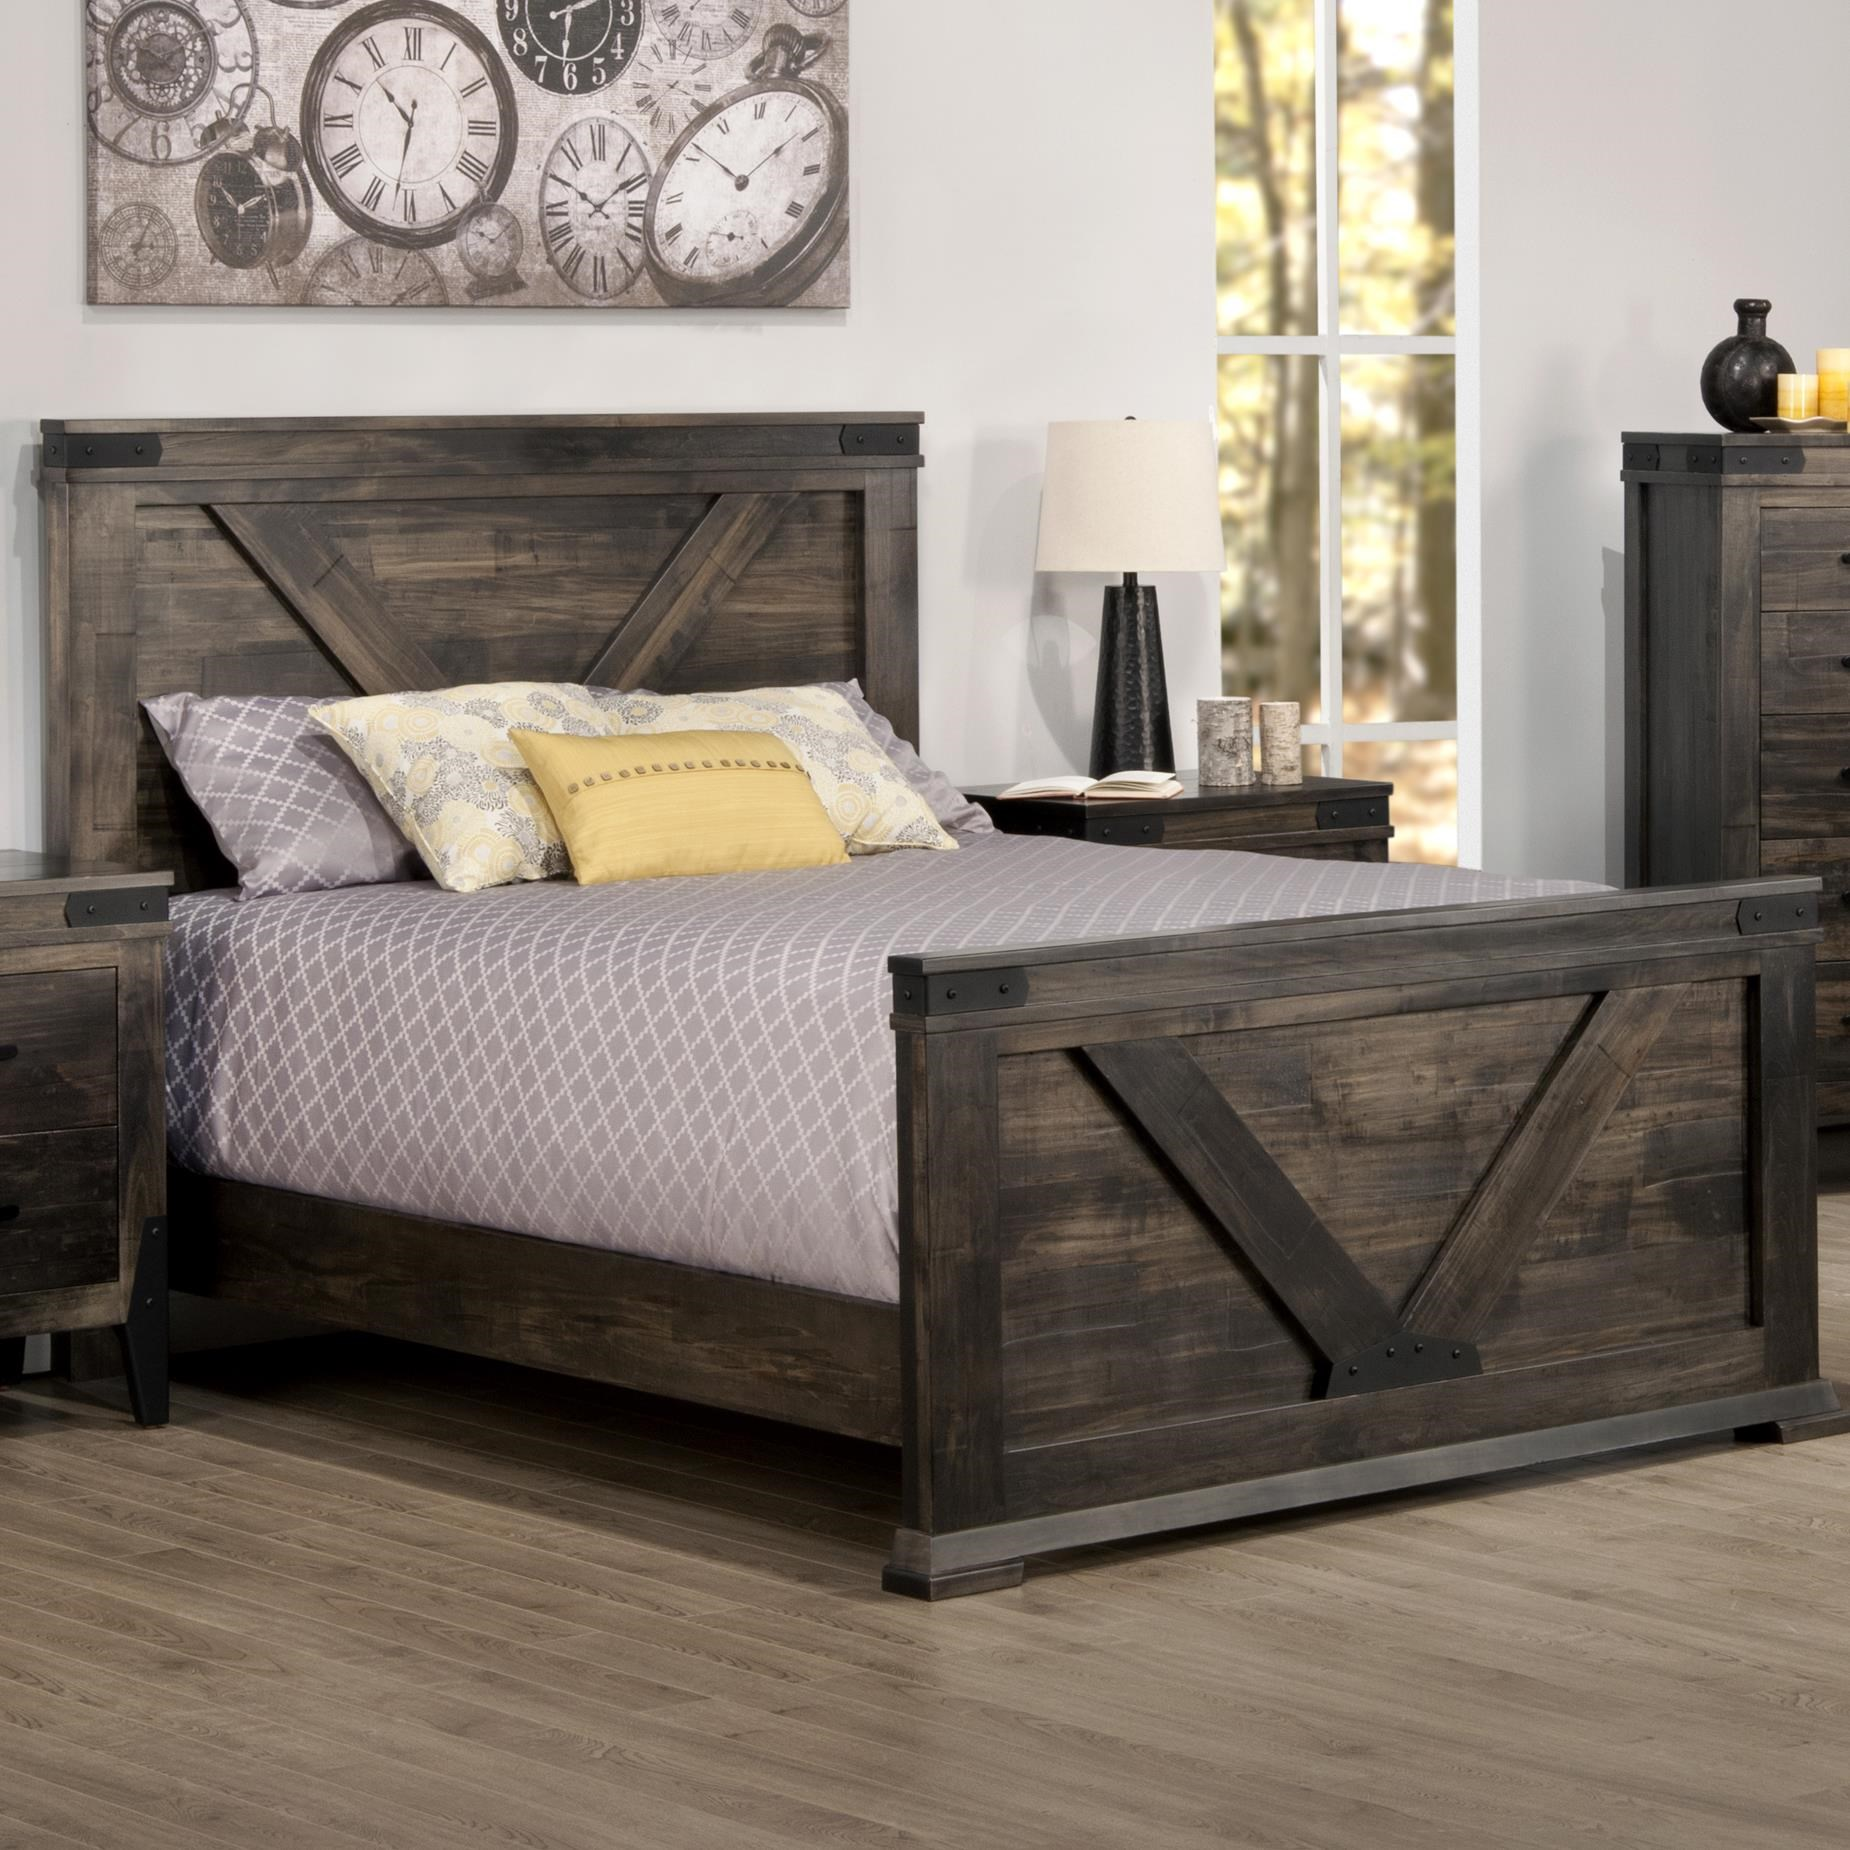 Merveilleux Handstone Chattanooga King Bed Stoney Creek Furniture